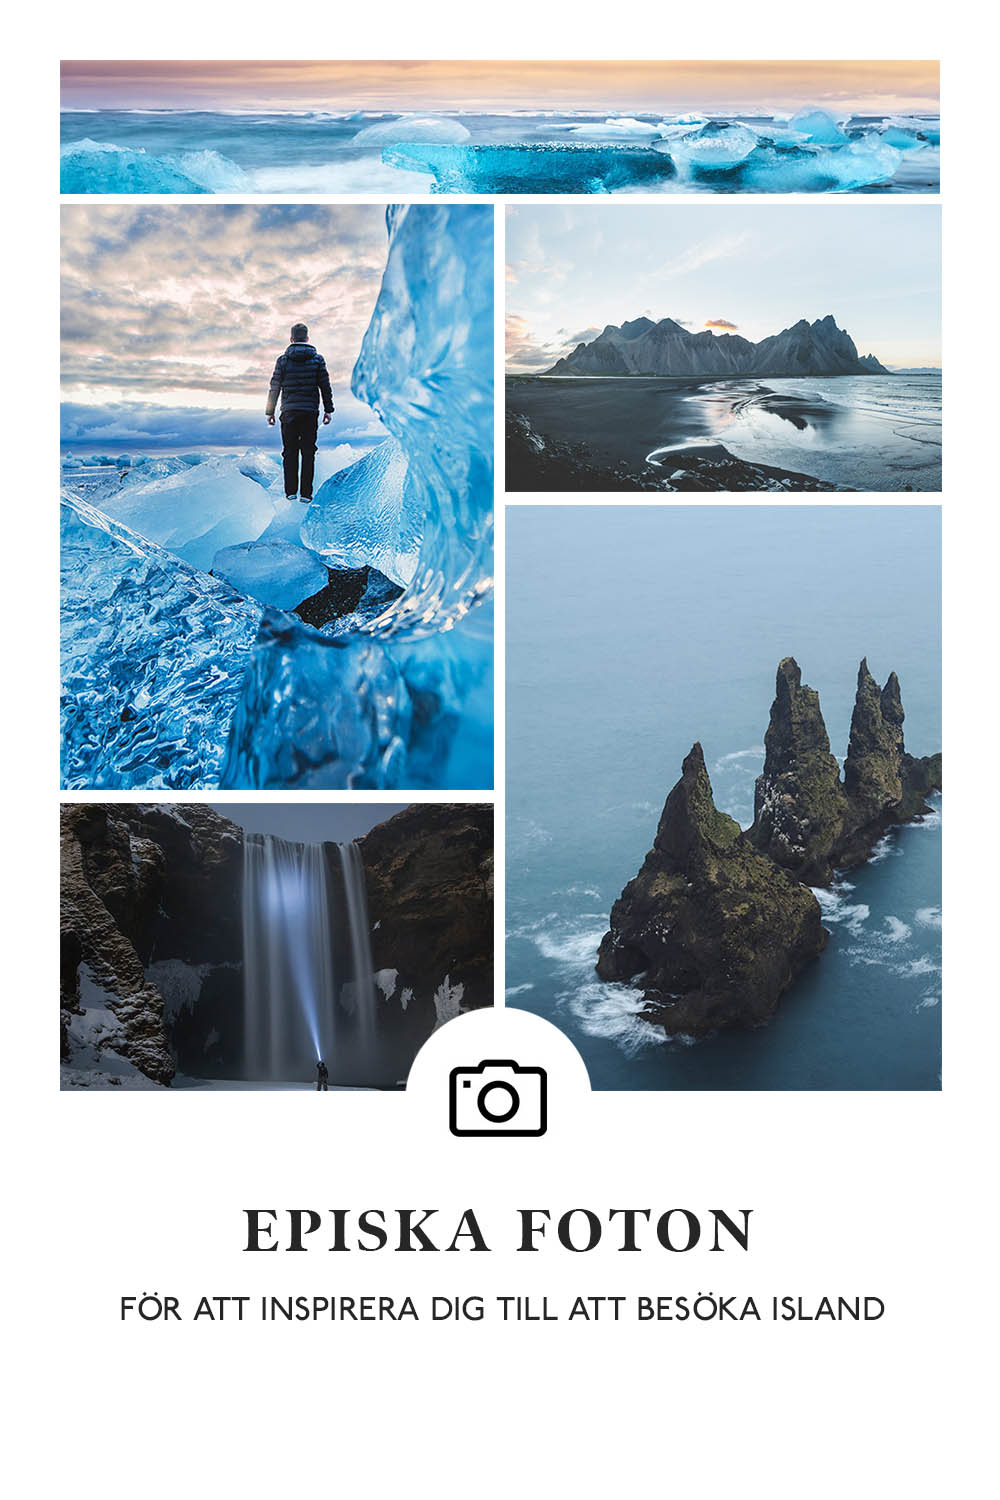 22 Epic Photos to Inspire You to Visit Iceland